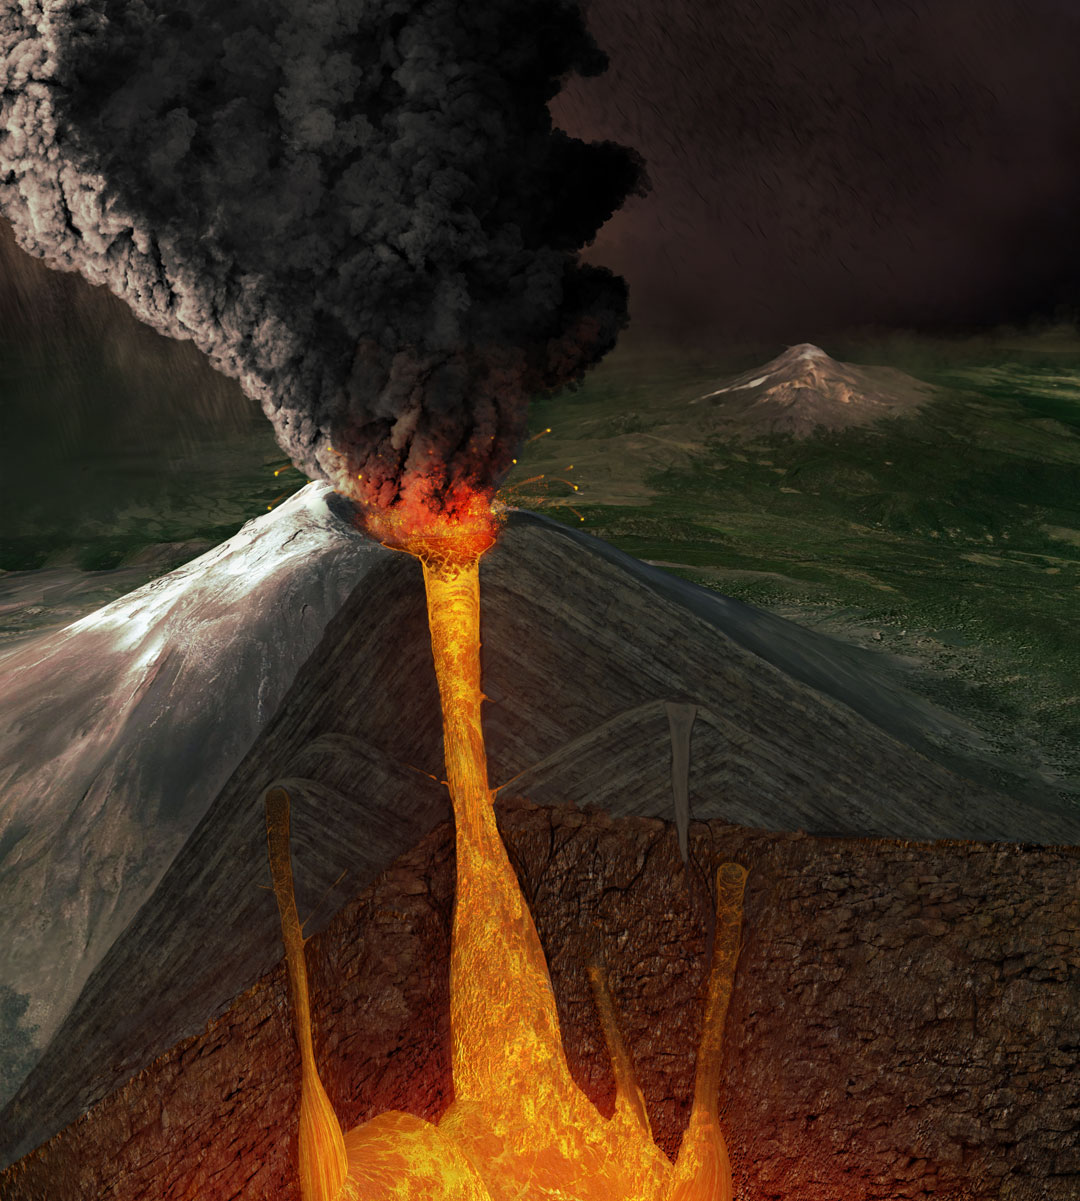 Mexican volcanoes, Quo Magazine January 2014. Popocatepetl, active stratovolcano. Art by Román García Mora.